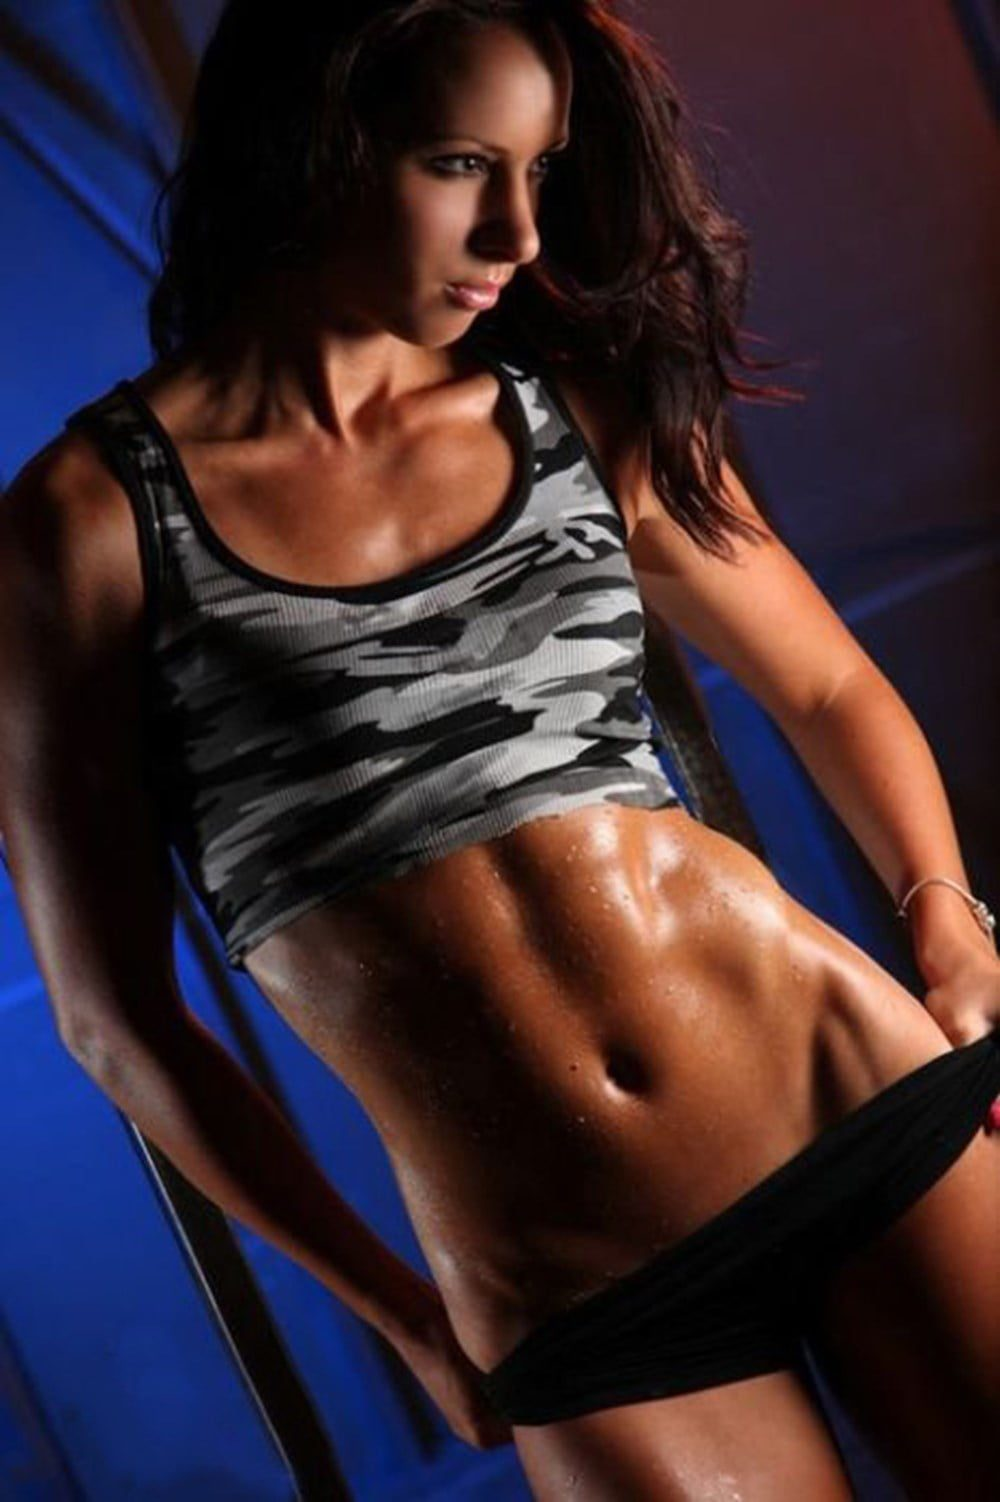 Muscular Girls Who Are Outstanding With Their Appearance 4